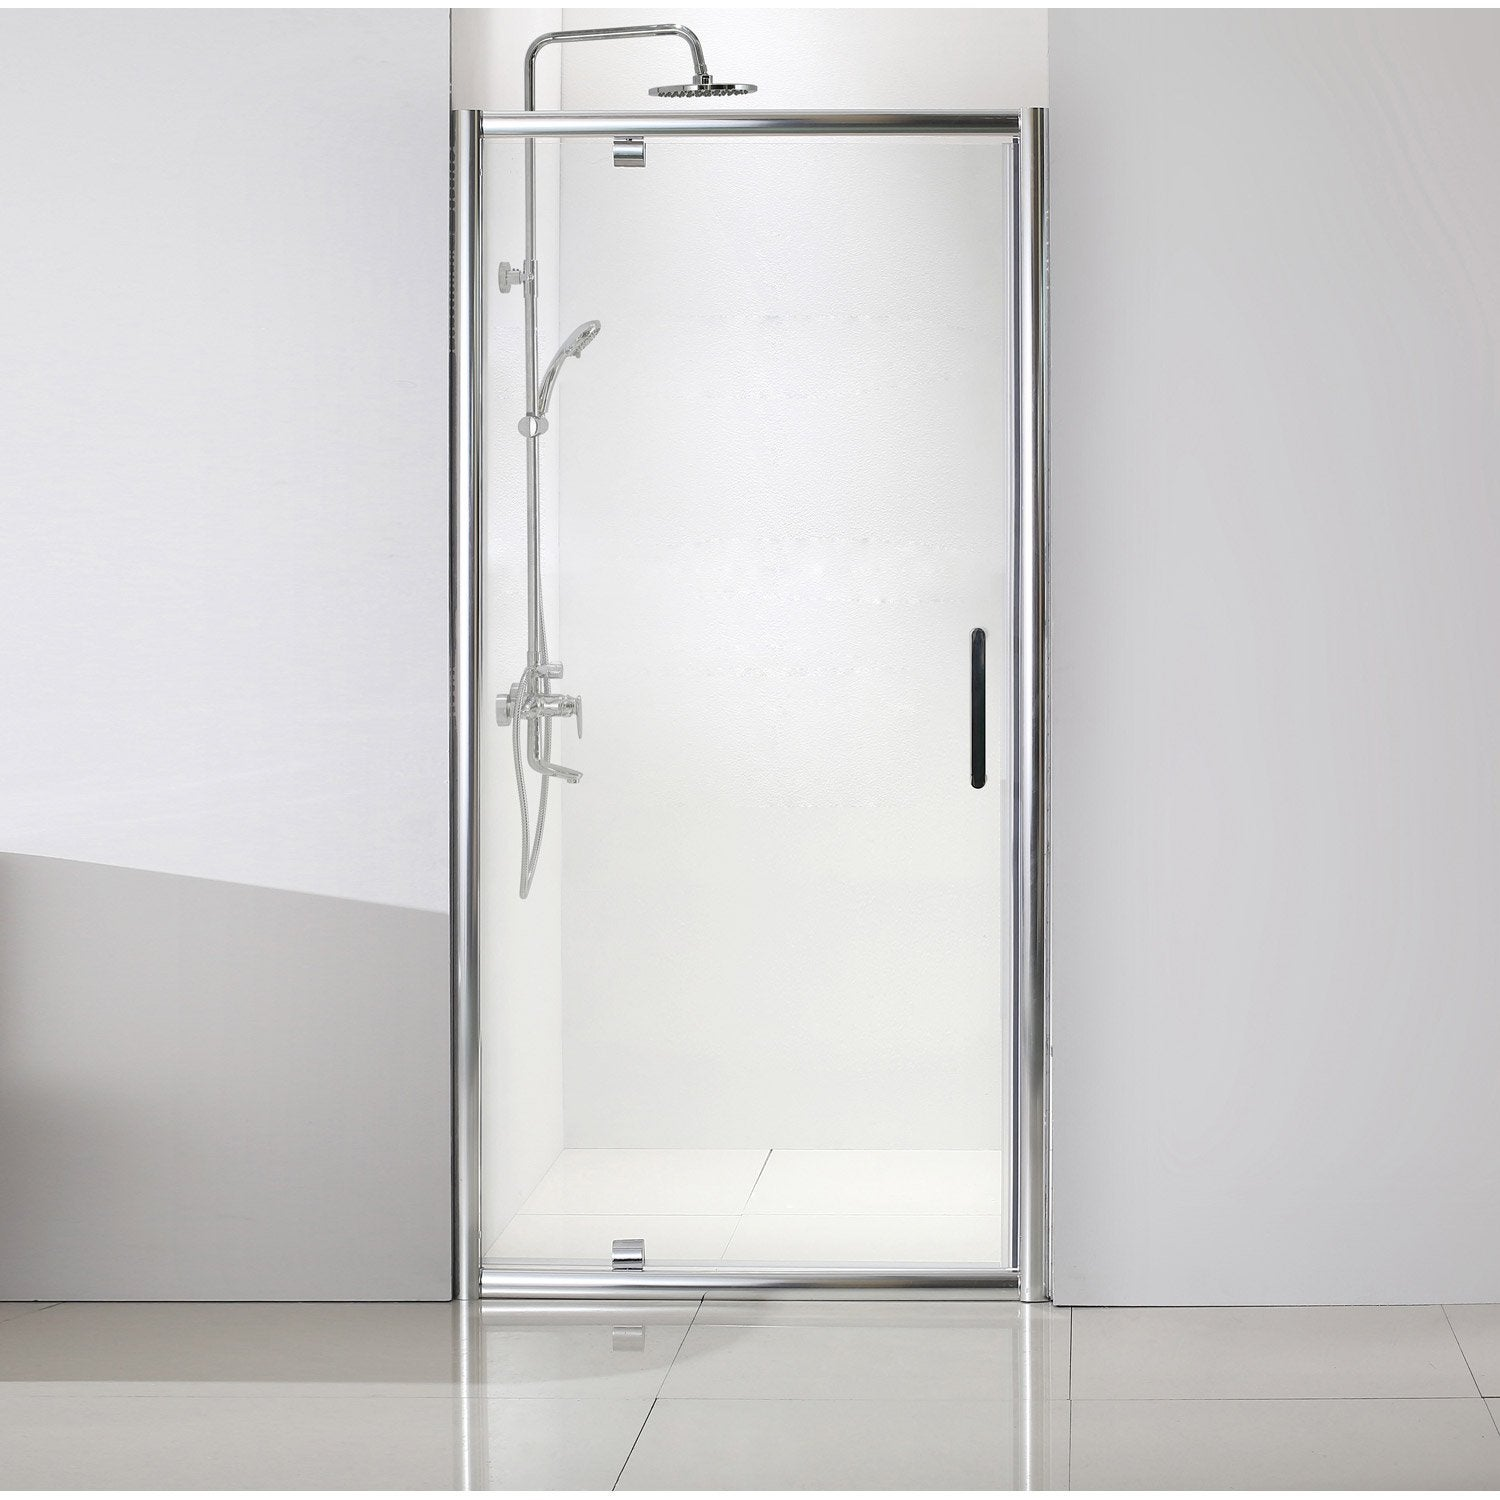 Porte de douche pivotante 100 cm transparent quad for Porte de douche leroy merlin